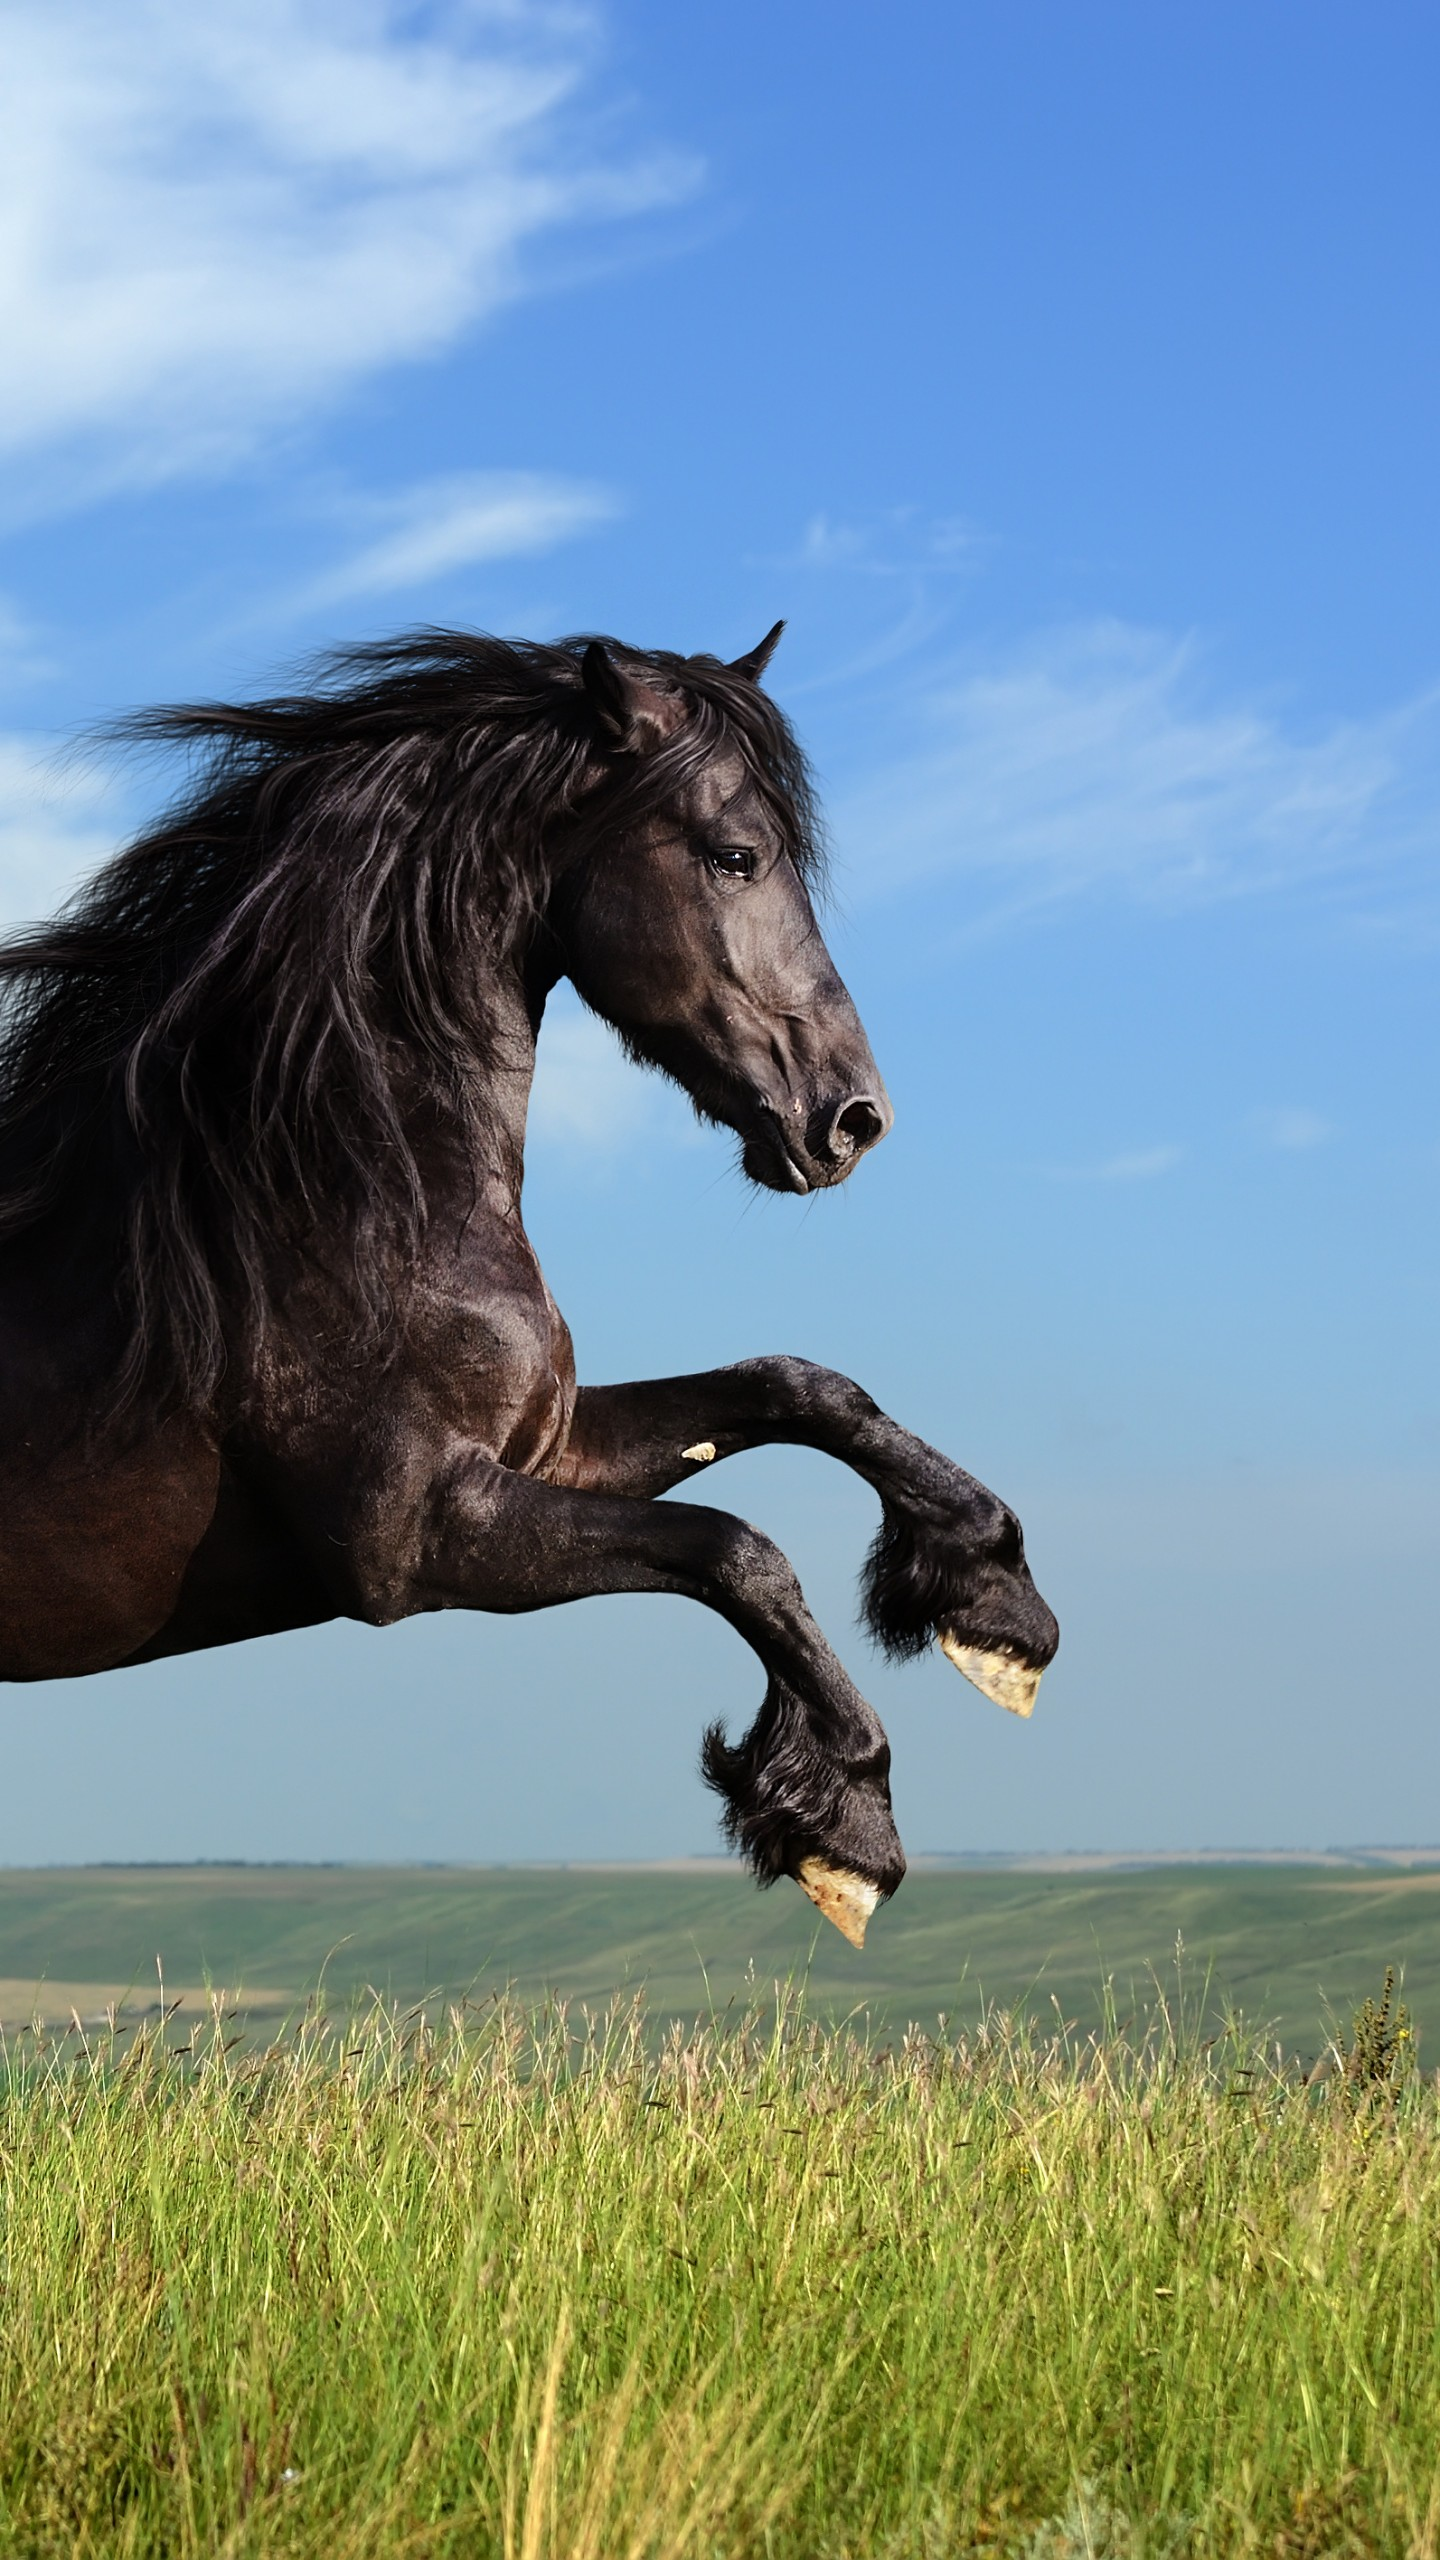 Cute Girly Wallpaper Quotes Wallpaper Horse Gallop Meadow Sky Animals 4774